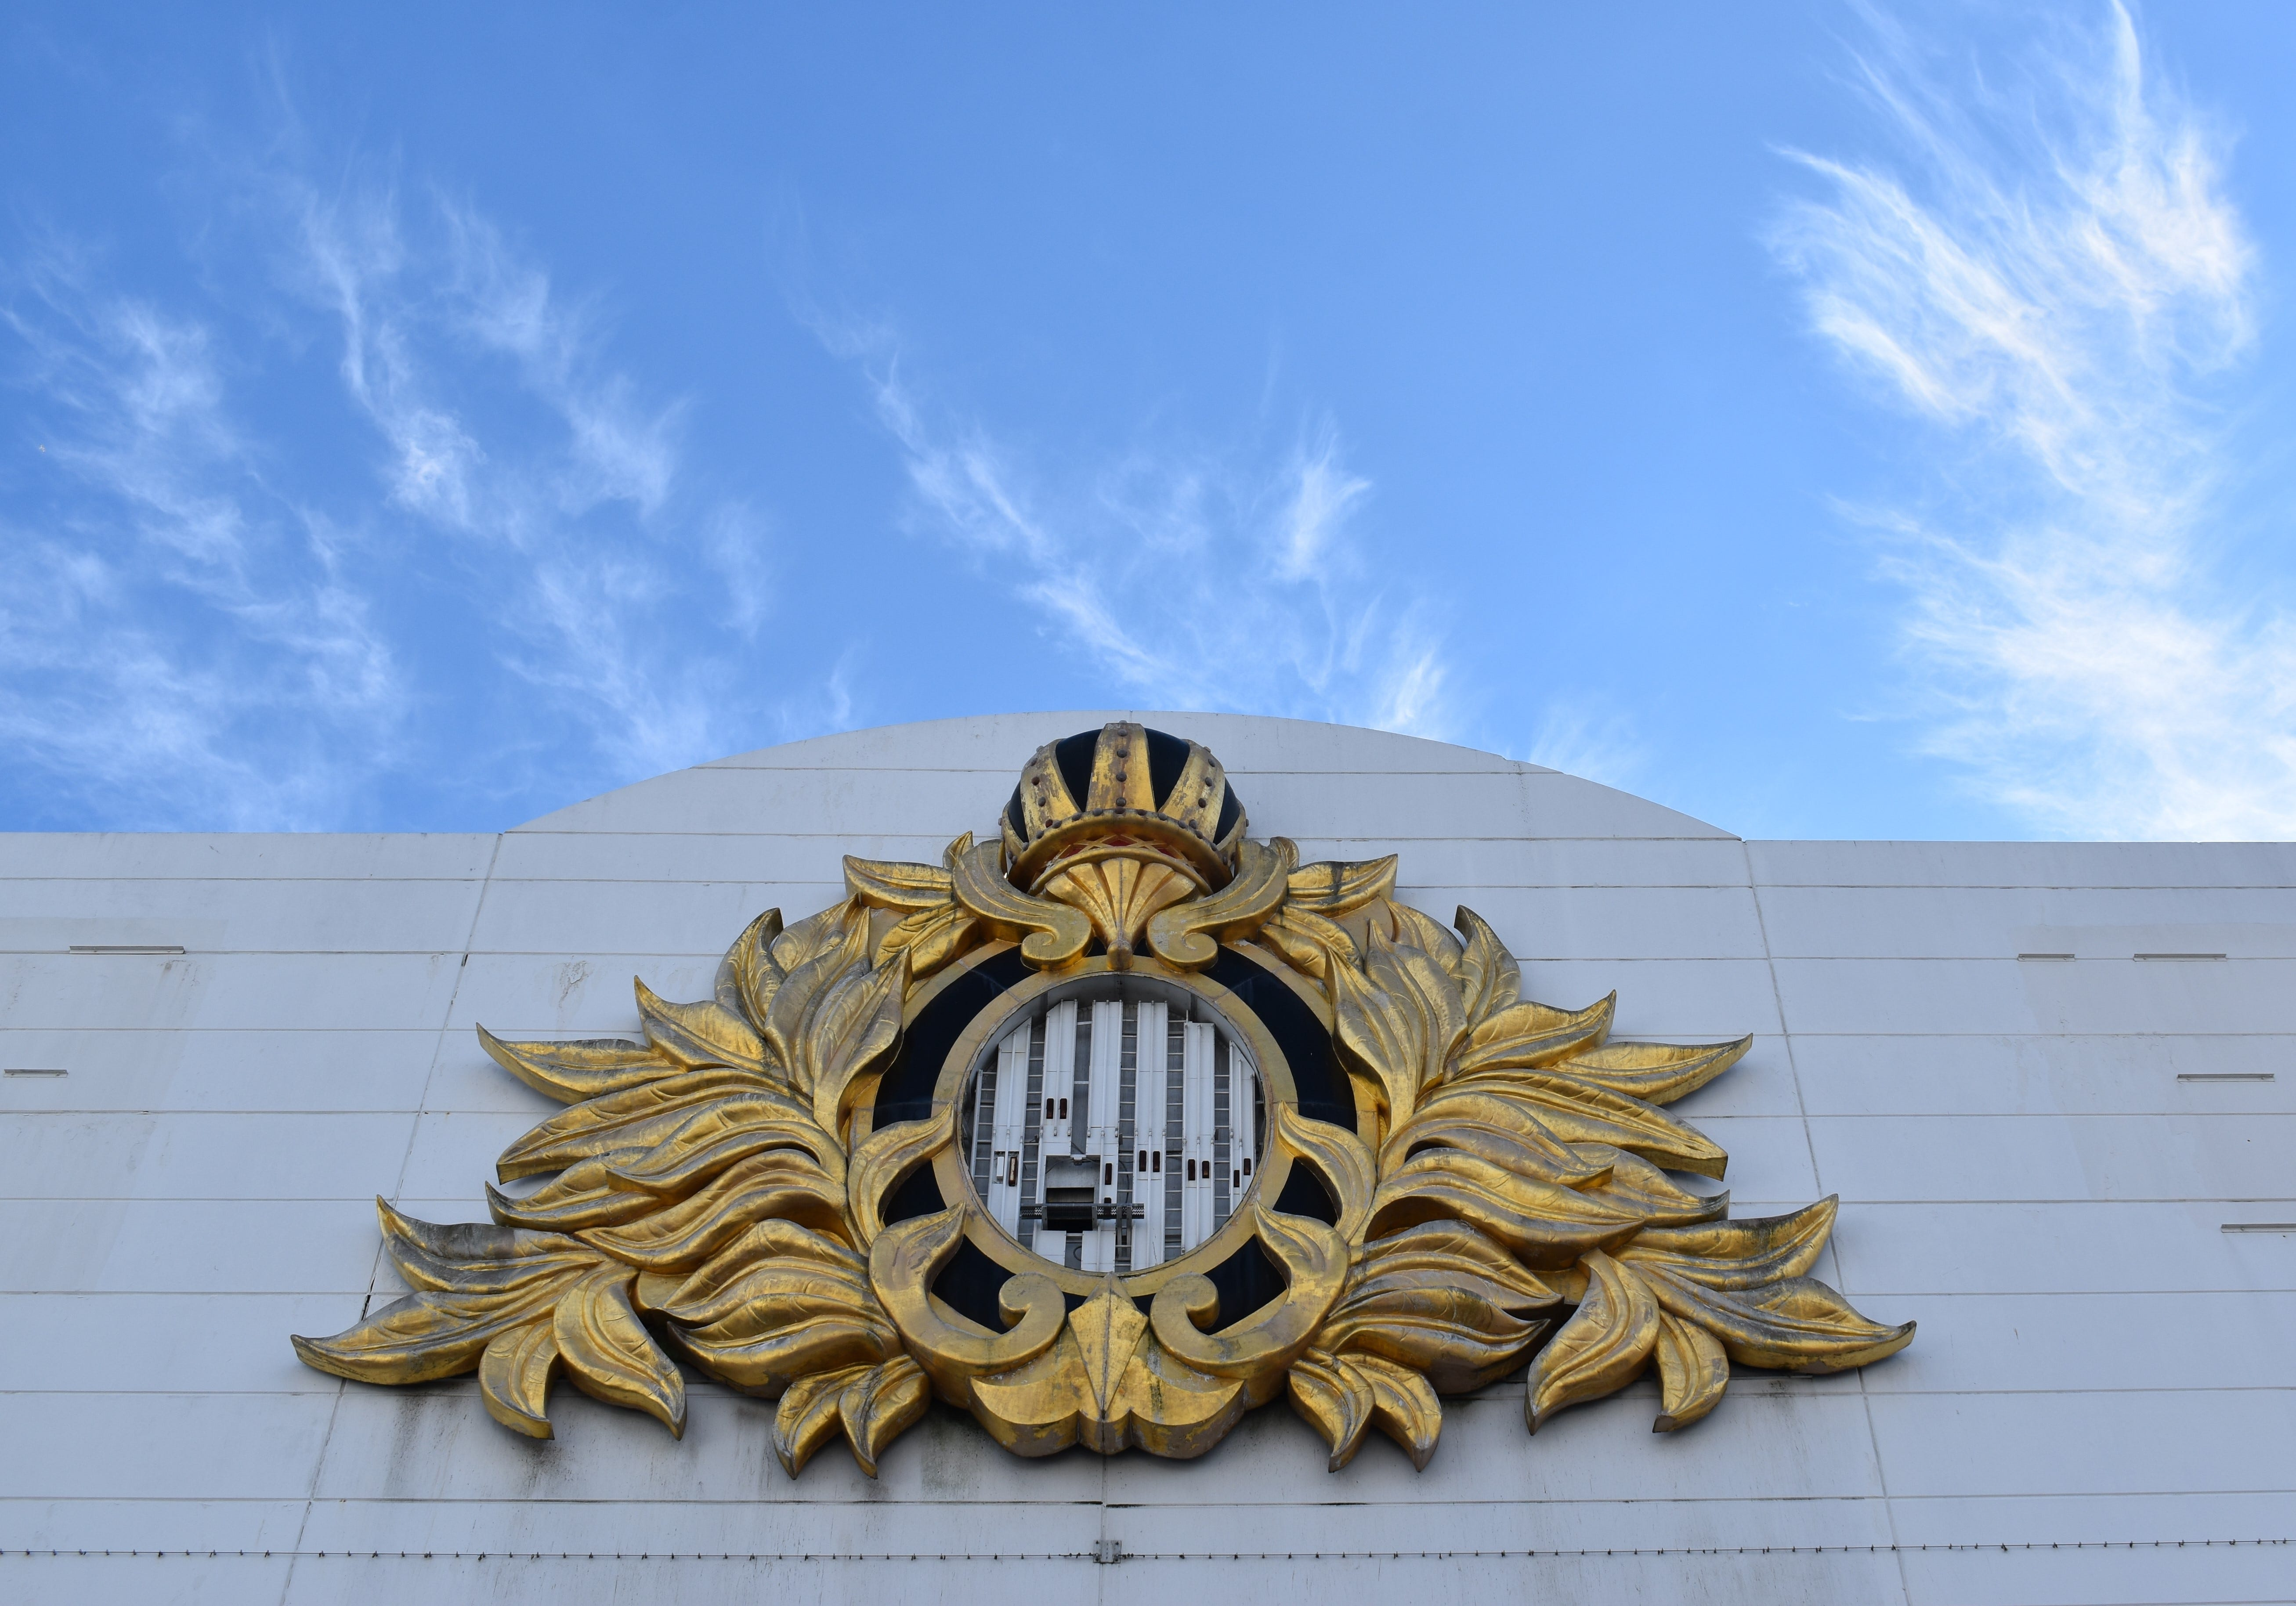 The remnants of a Trump Plaza logo appear on a wall at the Trump Plaza in Atlantic City.